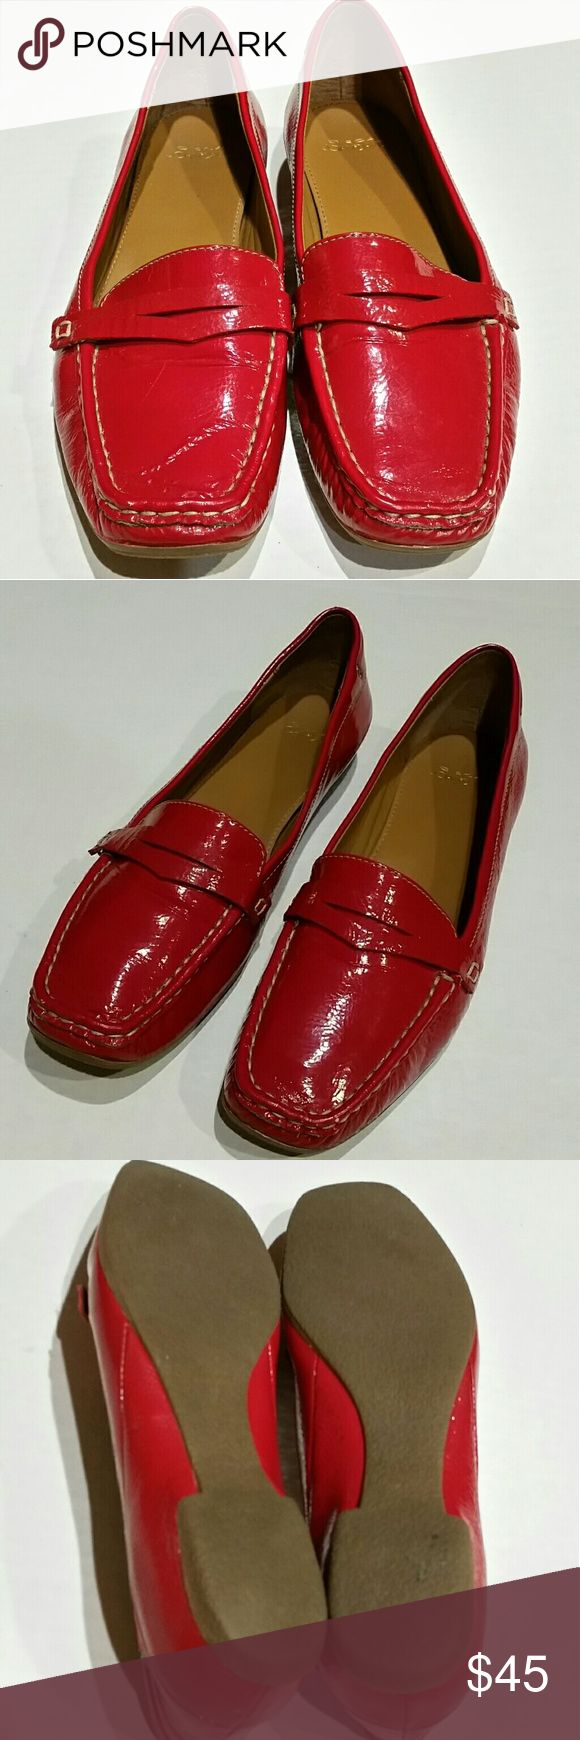 Joan & David Red Patent Leather Flats Loafers In excellent like new condition, comfortable and stylish red patent leather flats loafers from Circa Joan & David. Joan & David Shoes Flats & Loafers